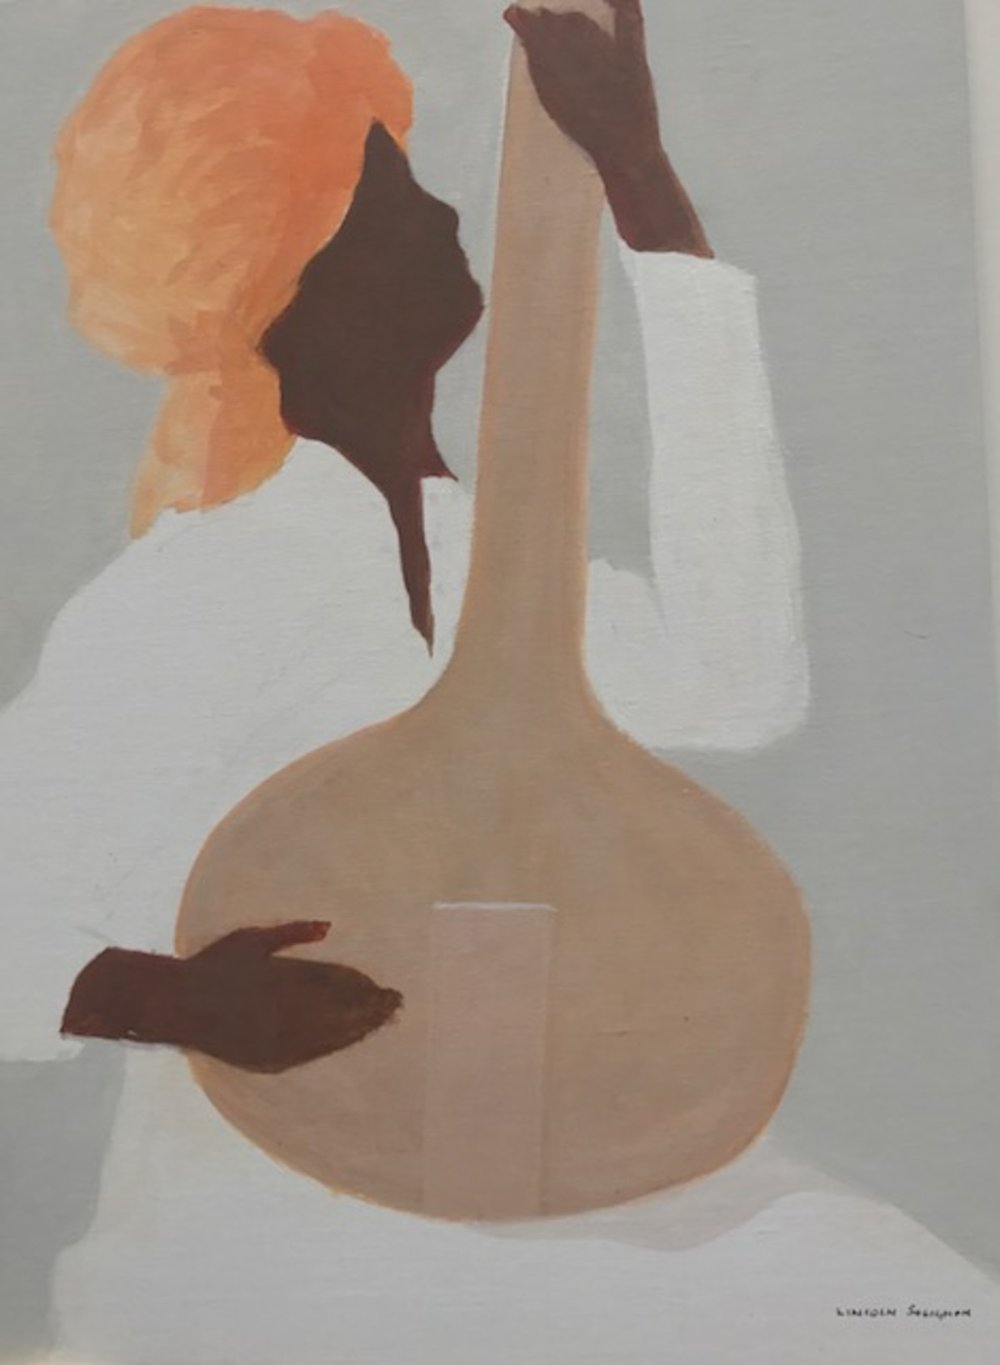 Sitar player, orange turban